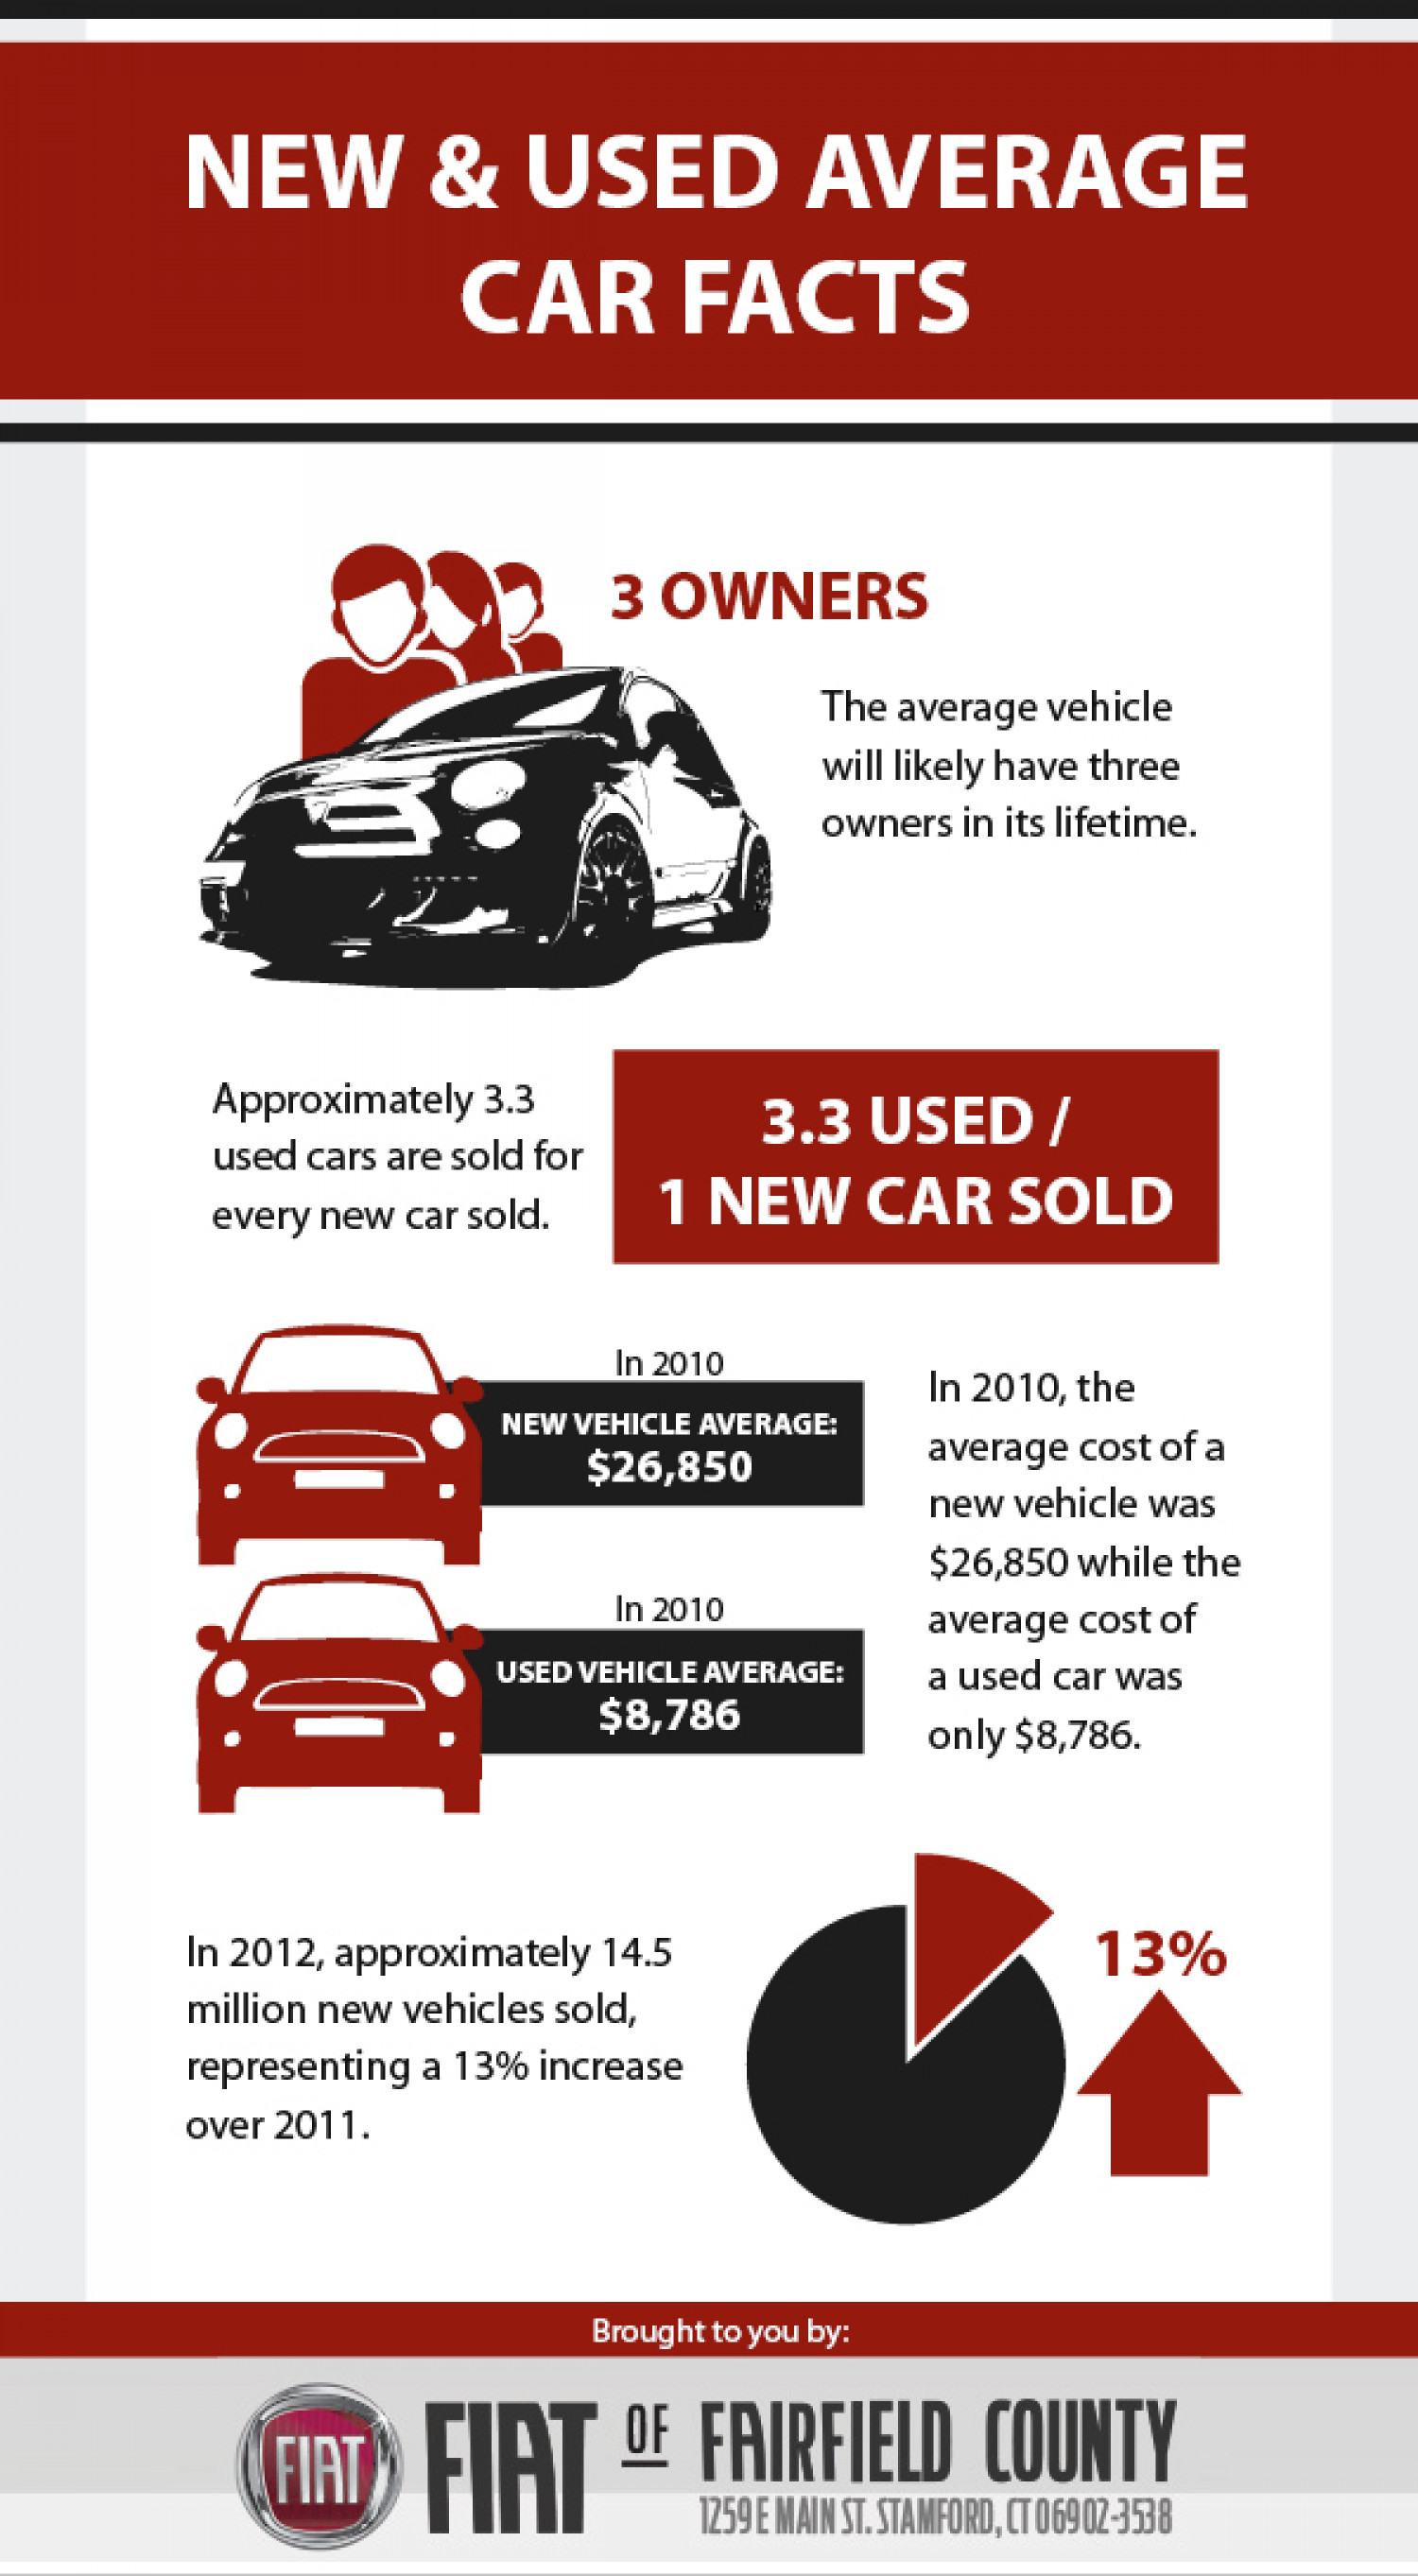 New & Used Average Car Facts Infographic